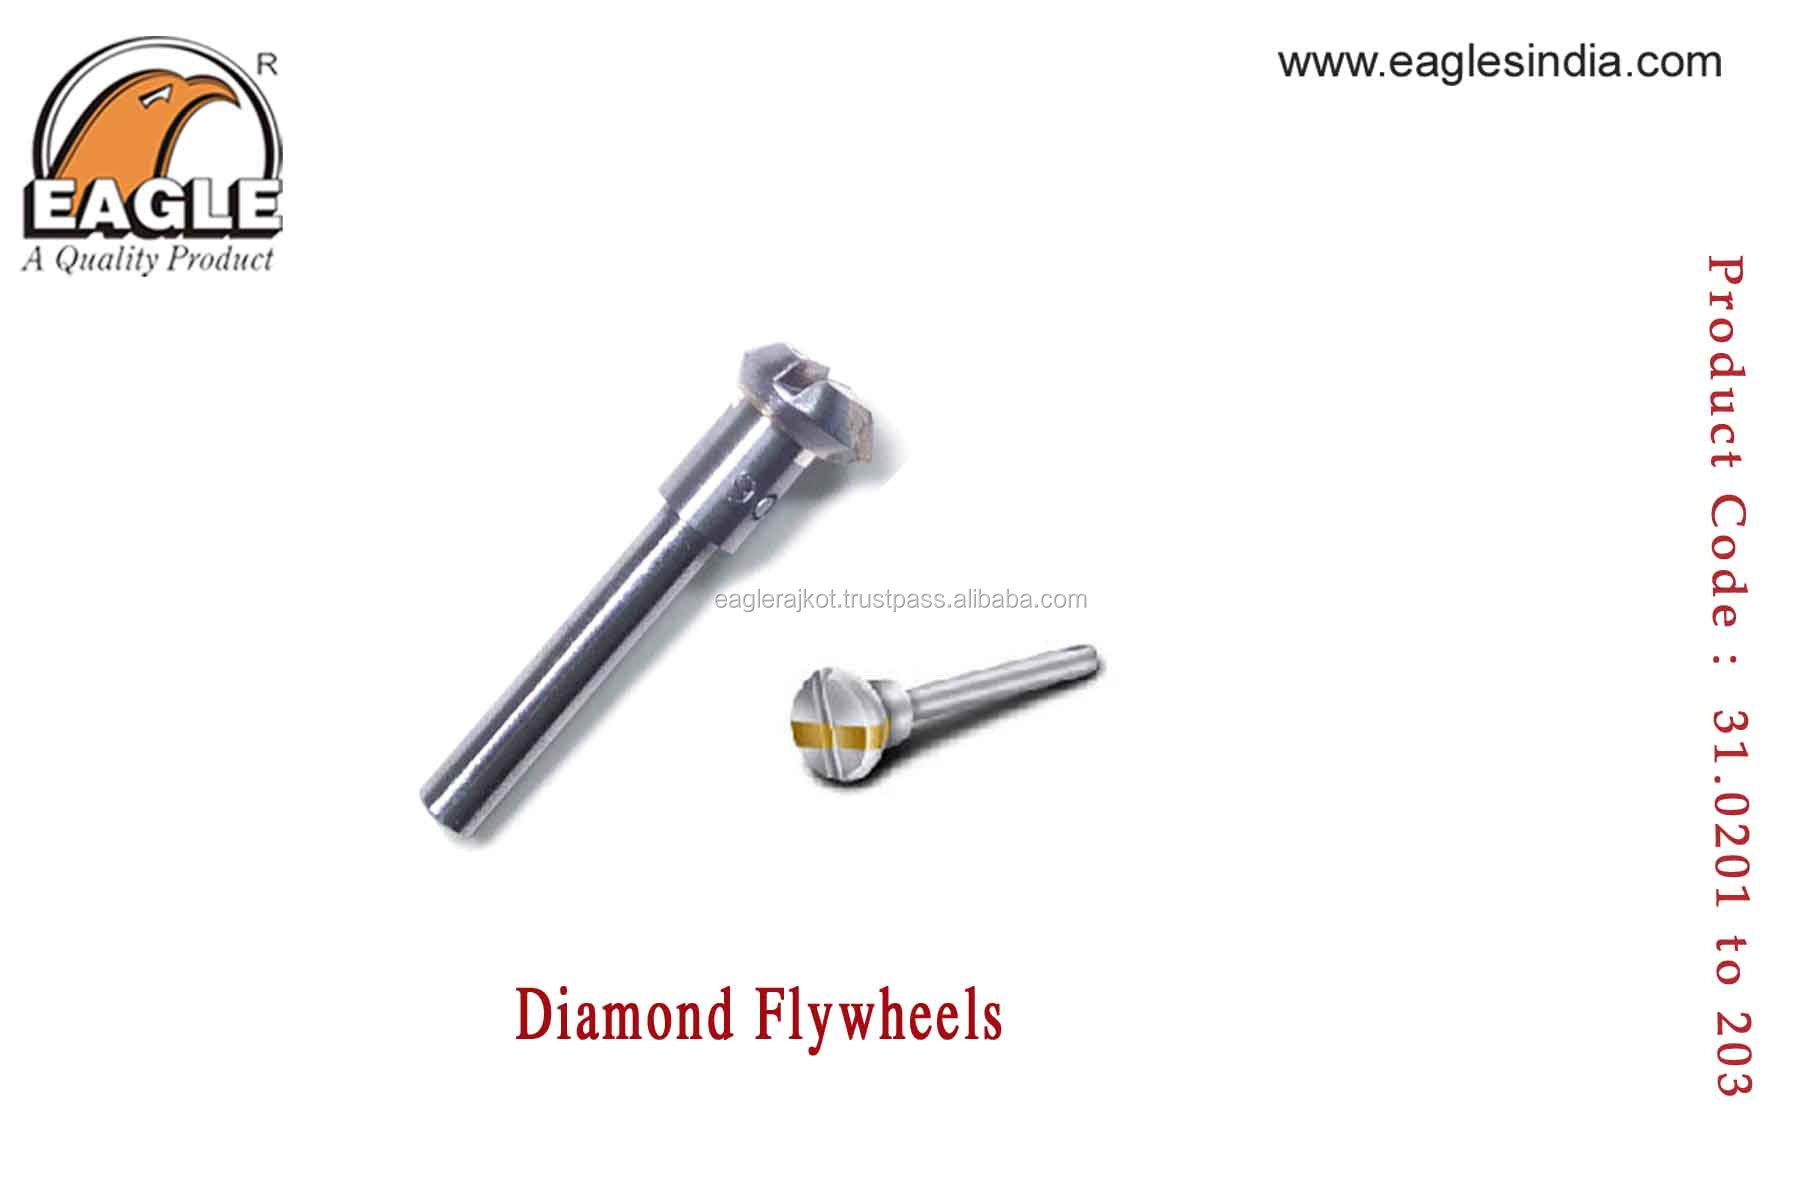 Jewelry for diamond flywheels for jewellery goldsmith tools